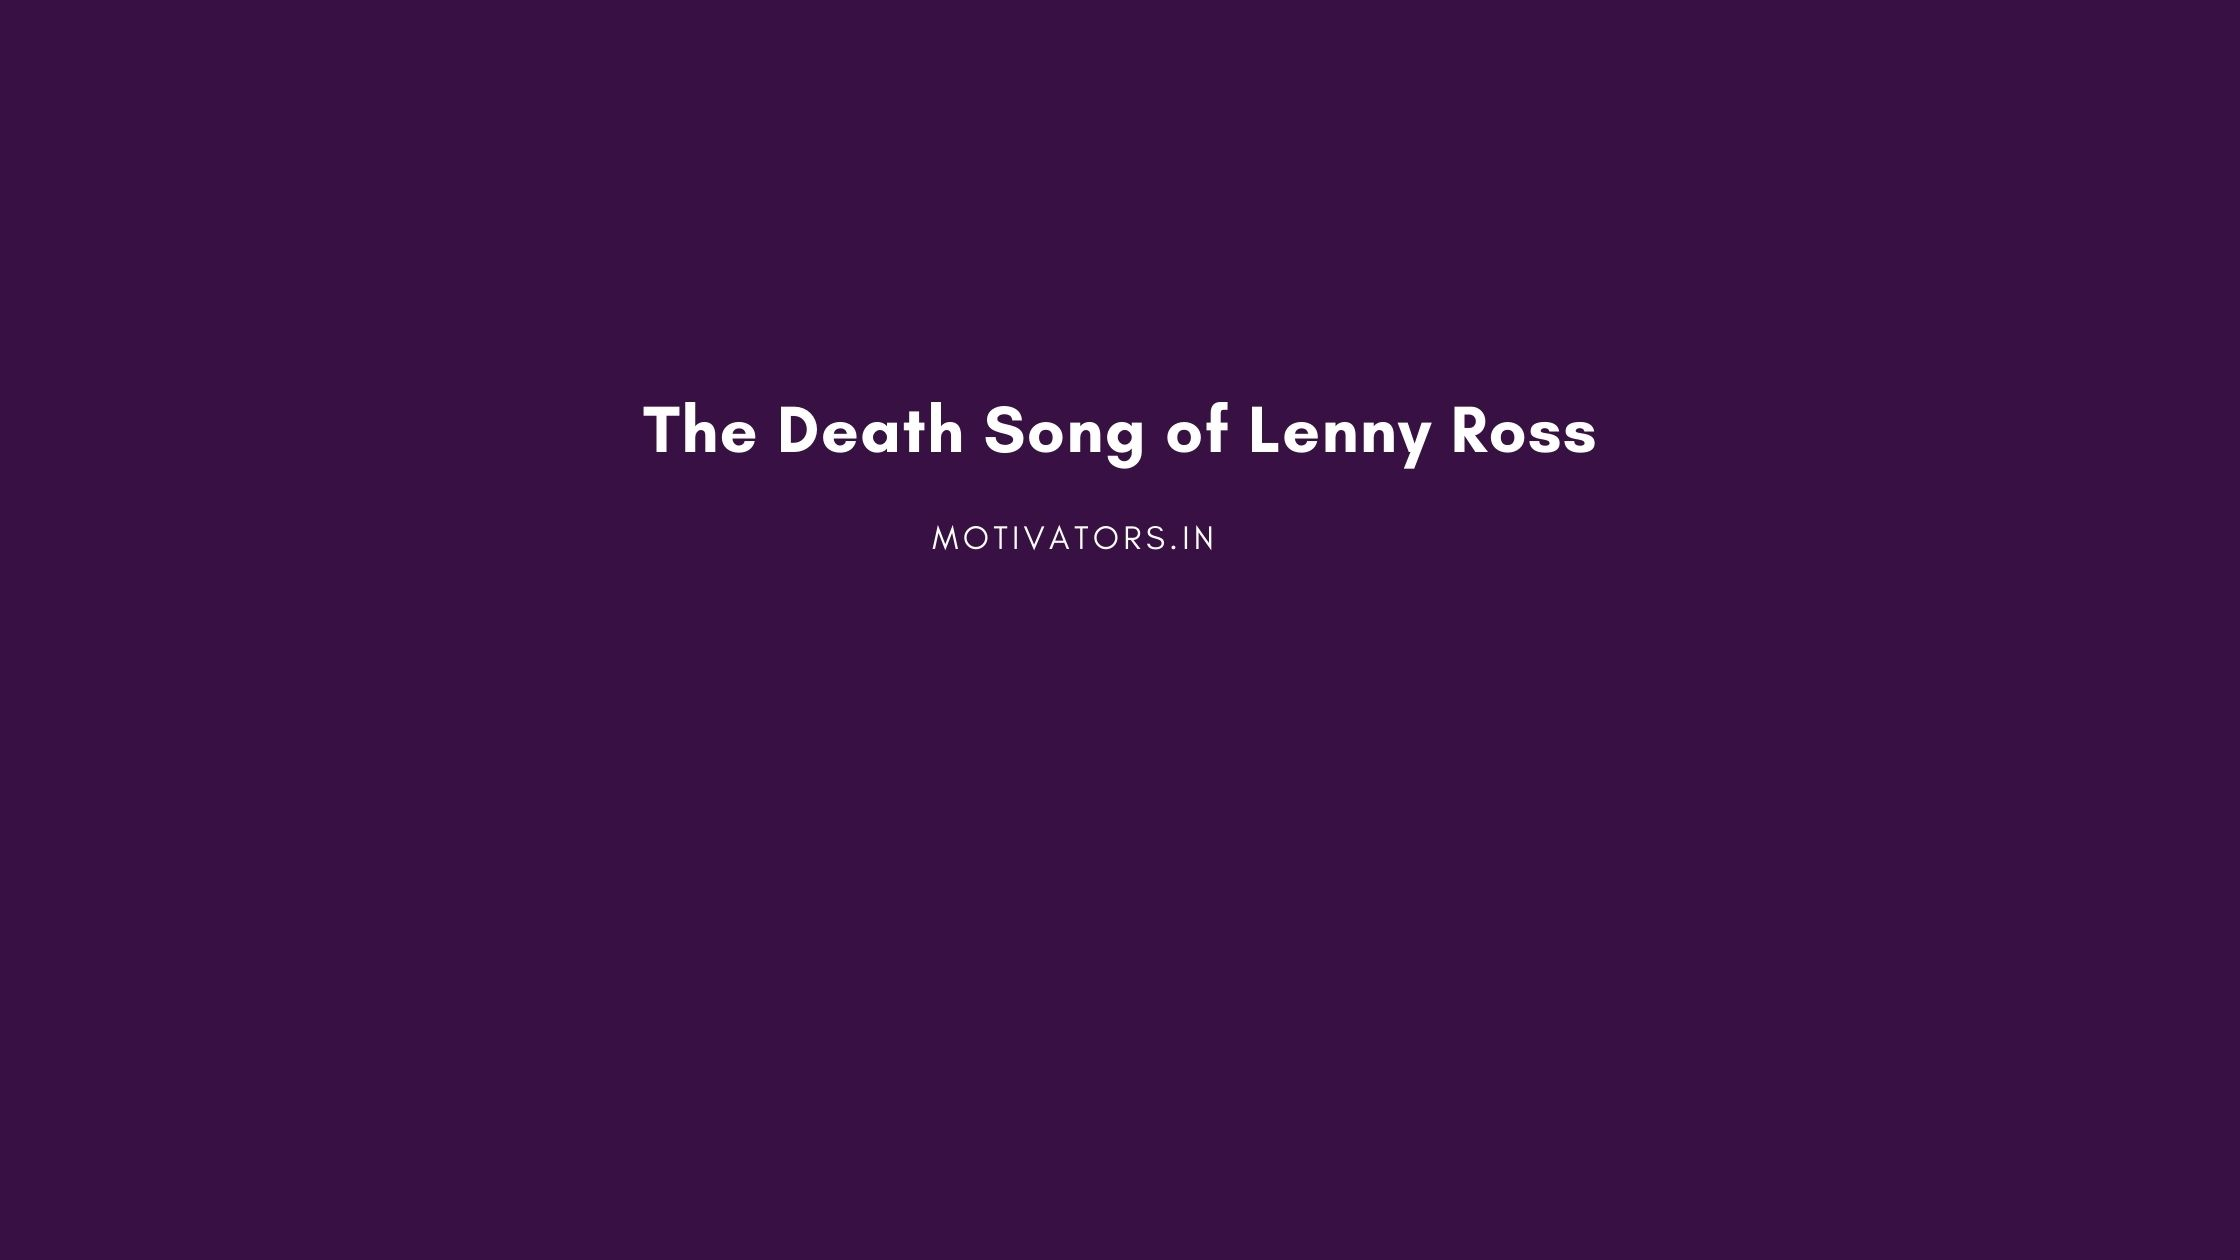 The Death Song of Lenny Ross